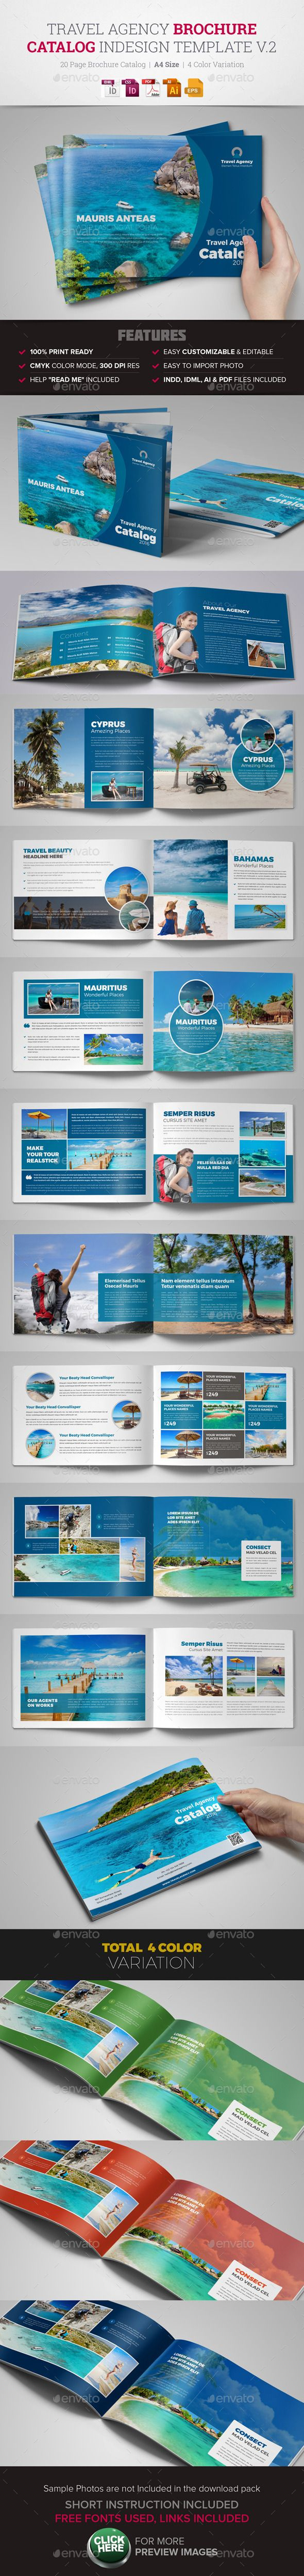 Travel Agency Brochure Catalog InDesign 2 - Corporate Brochures